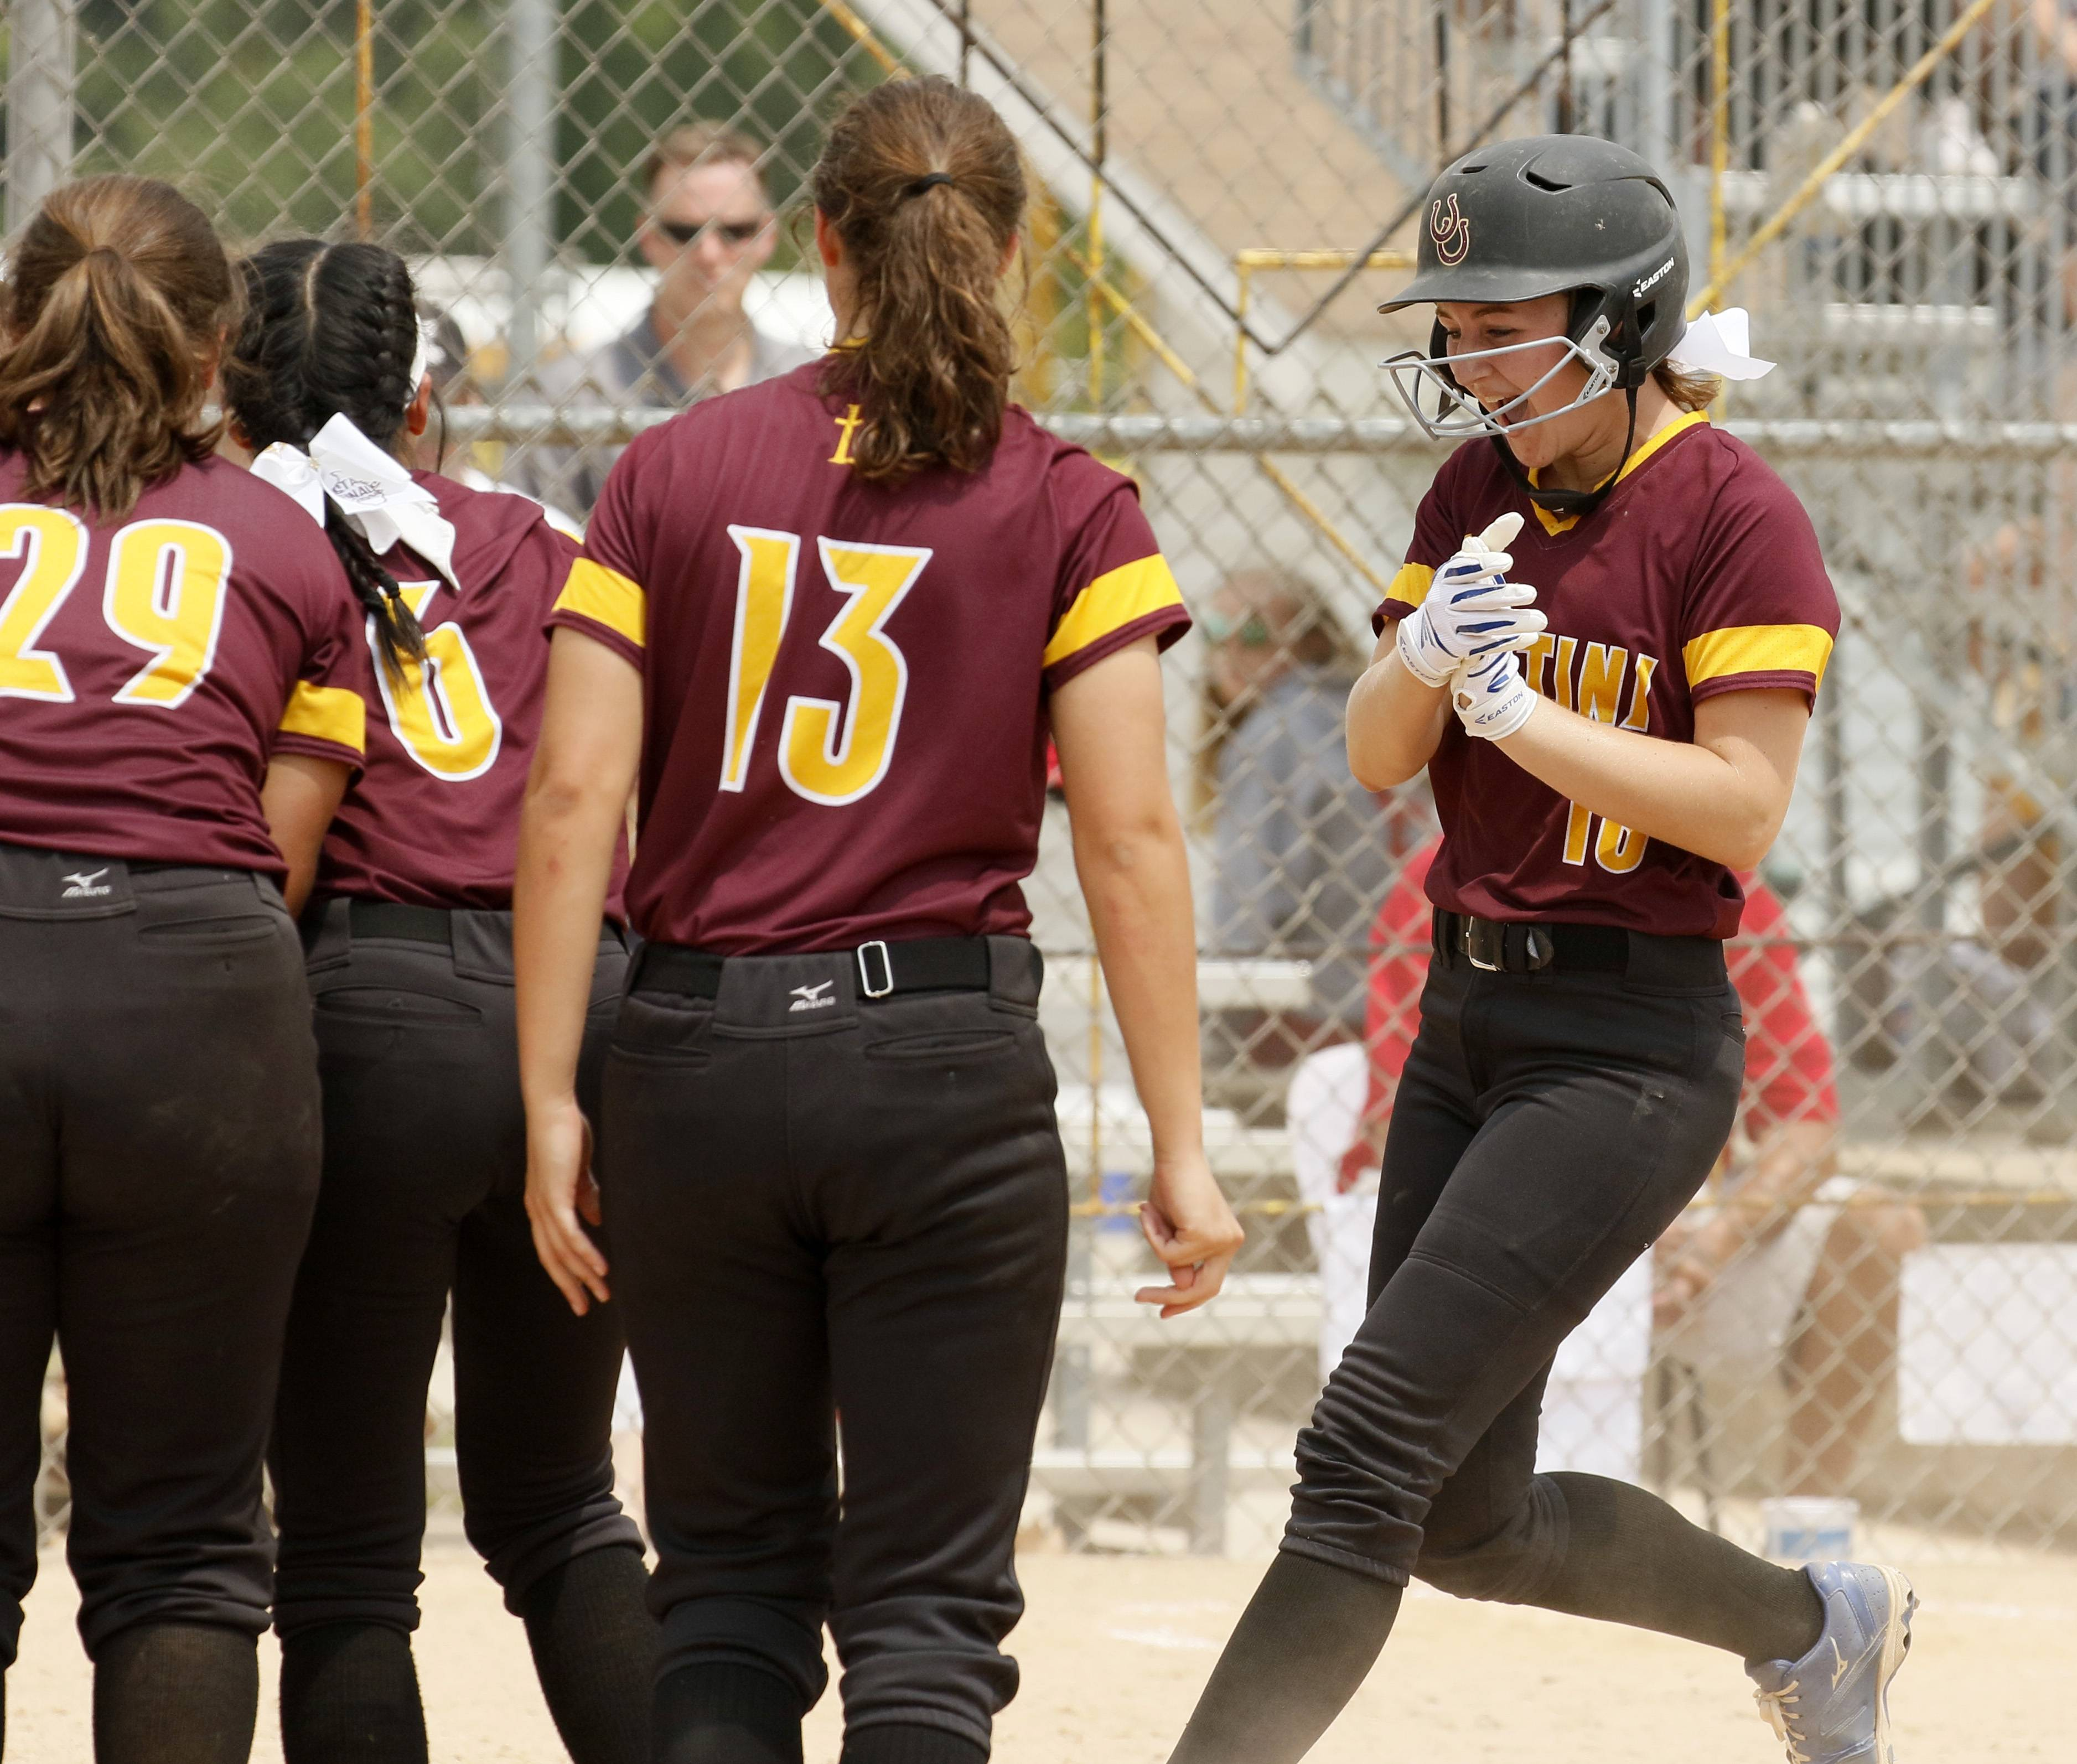 Montini Catholic's Alyssa Filkowski (18) is greeted at home plate after hitting a home run against Kaneland during the IHSA Class 3A state softball championship.